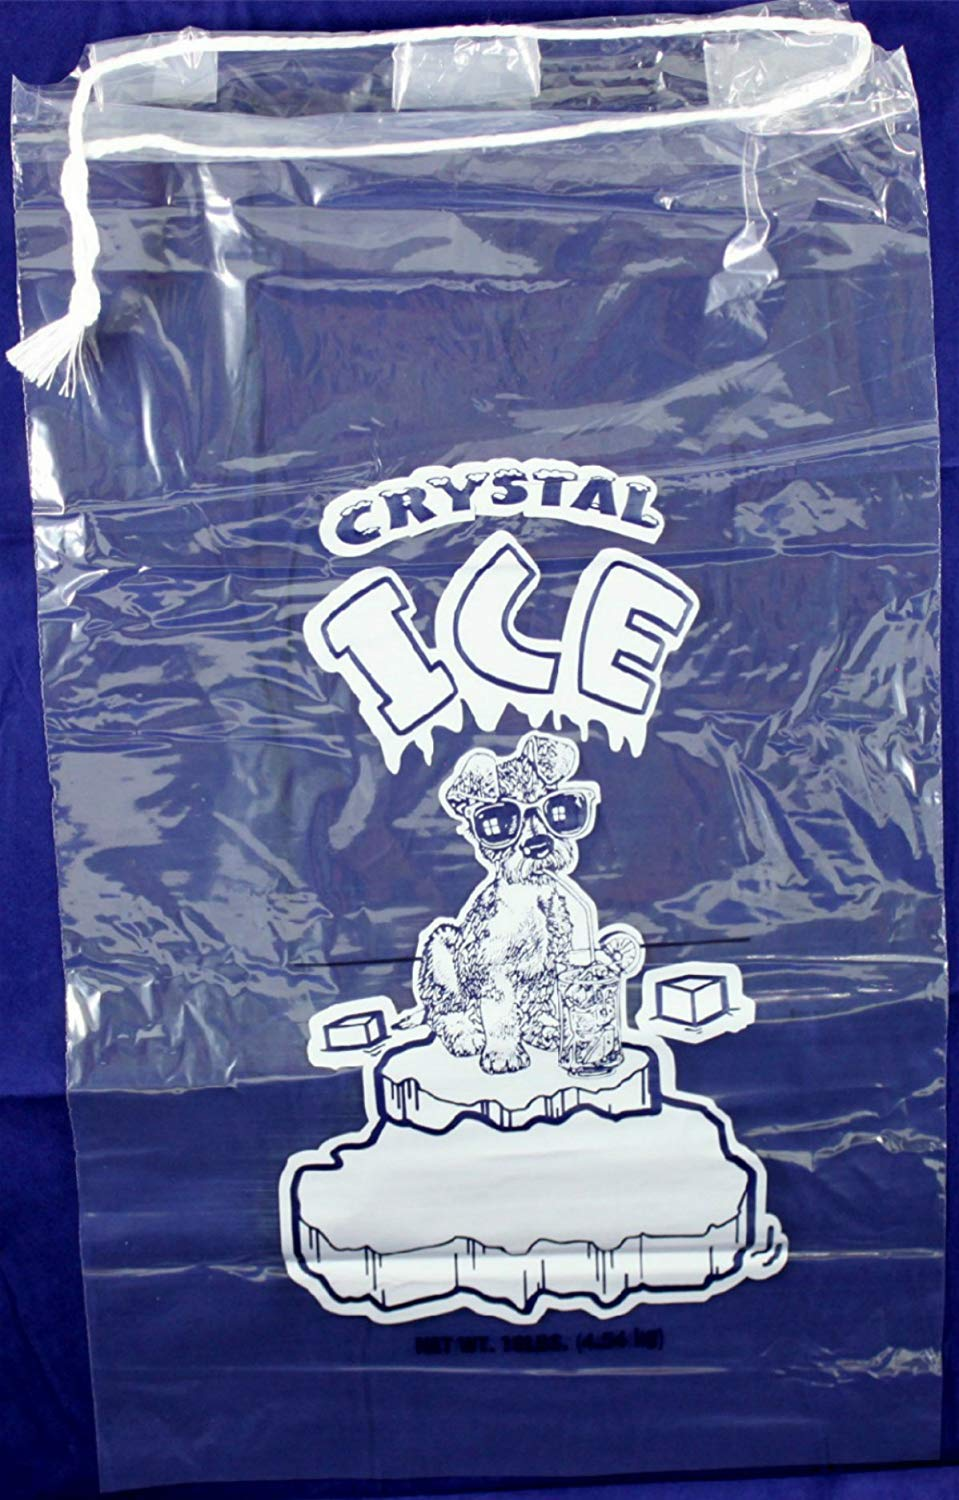 Pinnacle Mercantile Plastic Ice Bags 10 Lb. with Draw String Closure Pack 500 by Pinnacle Mercantile (Image #2)